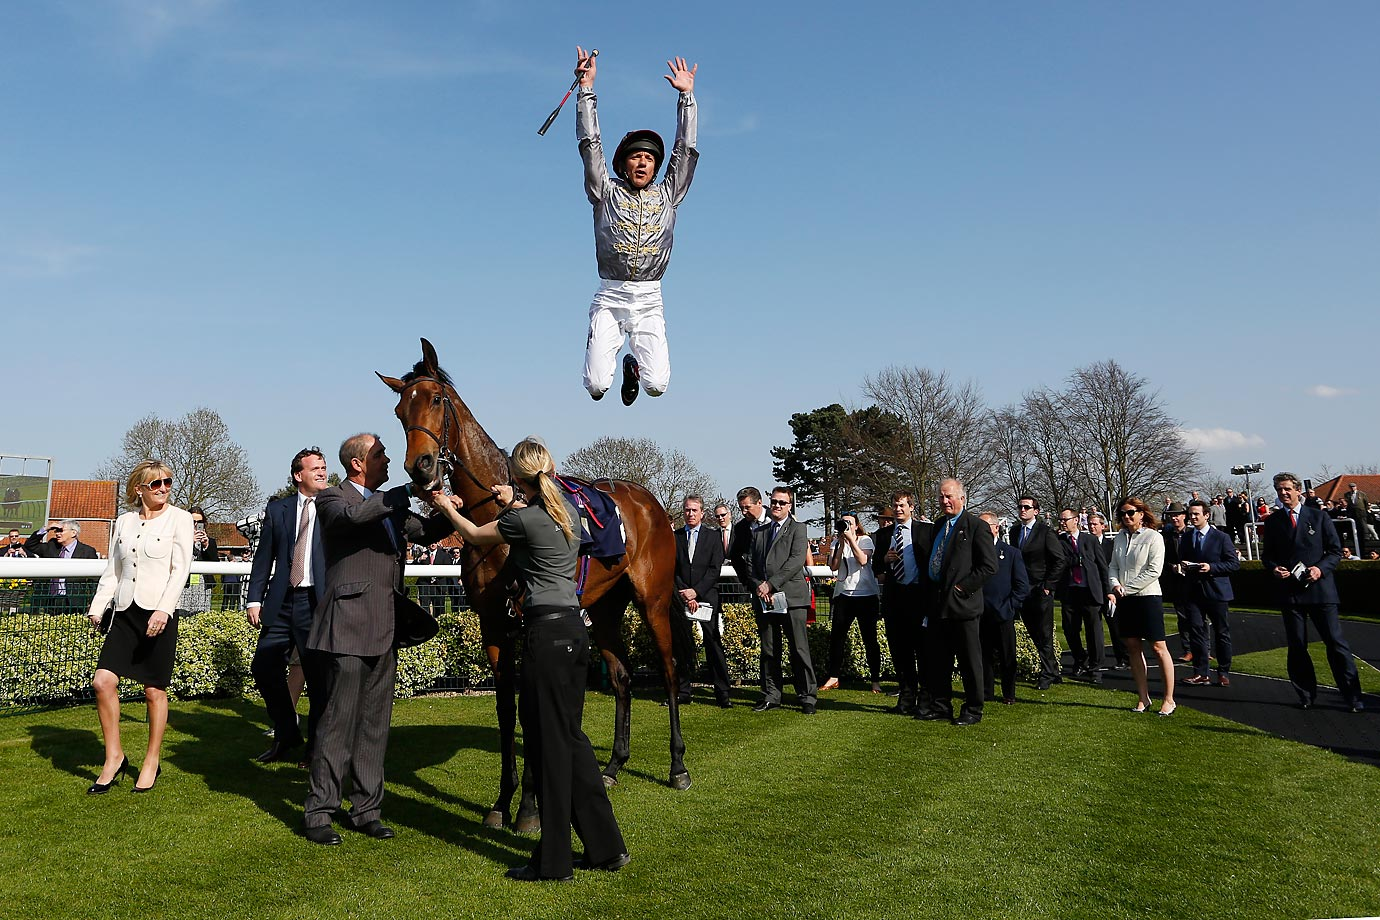 Frankie Dettori leaps off his horse Osaila after winning the The Lanwades Stud Nell Gwyn Stakes at the Newmarket racecourse in England.